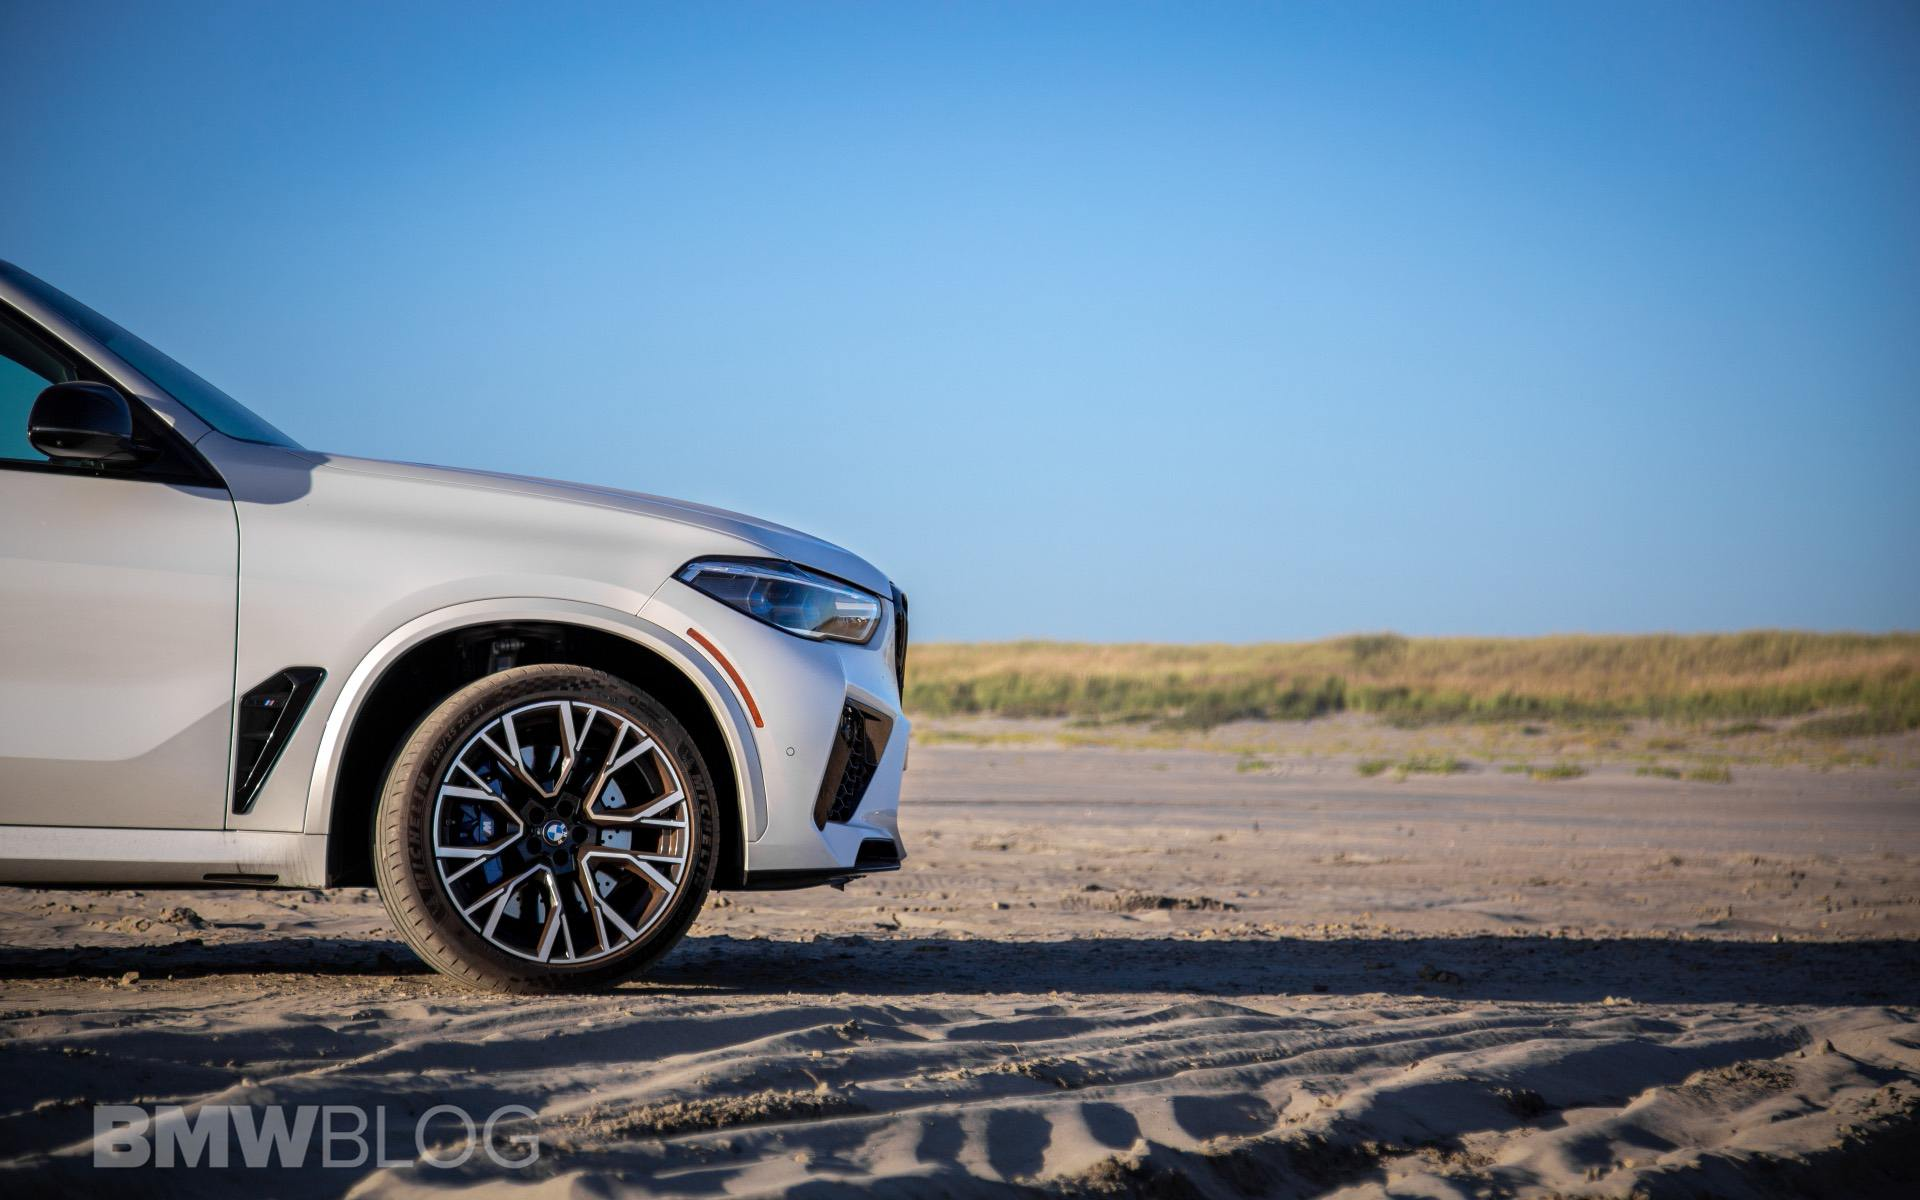 2021 bmw x5 m competition road trip 12